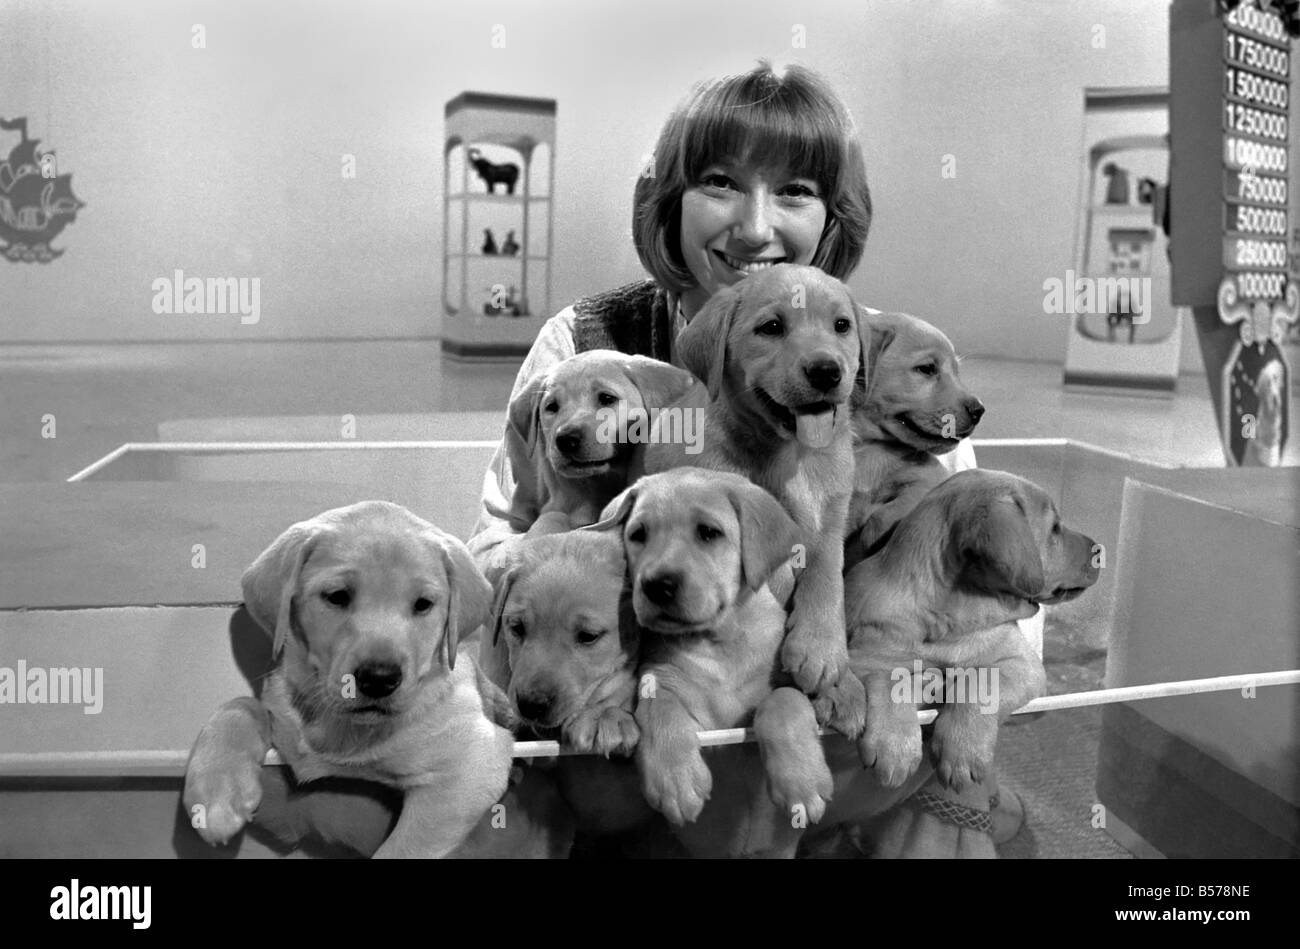 Lesley Judd Lesley Judd new pictures